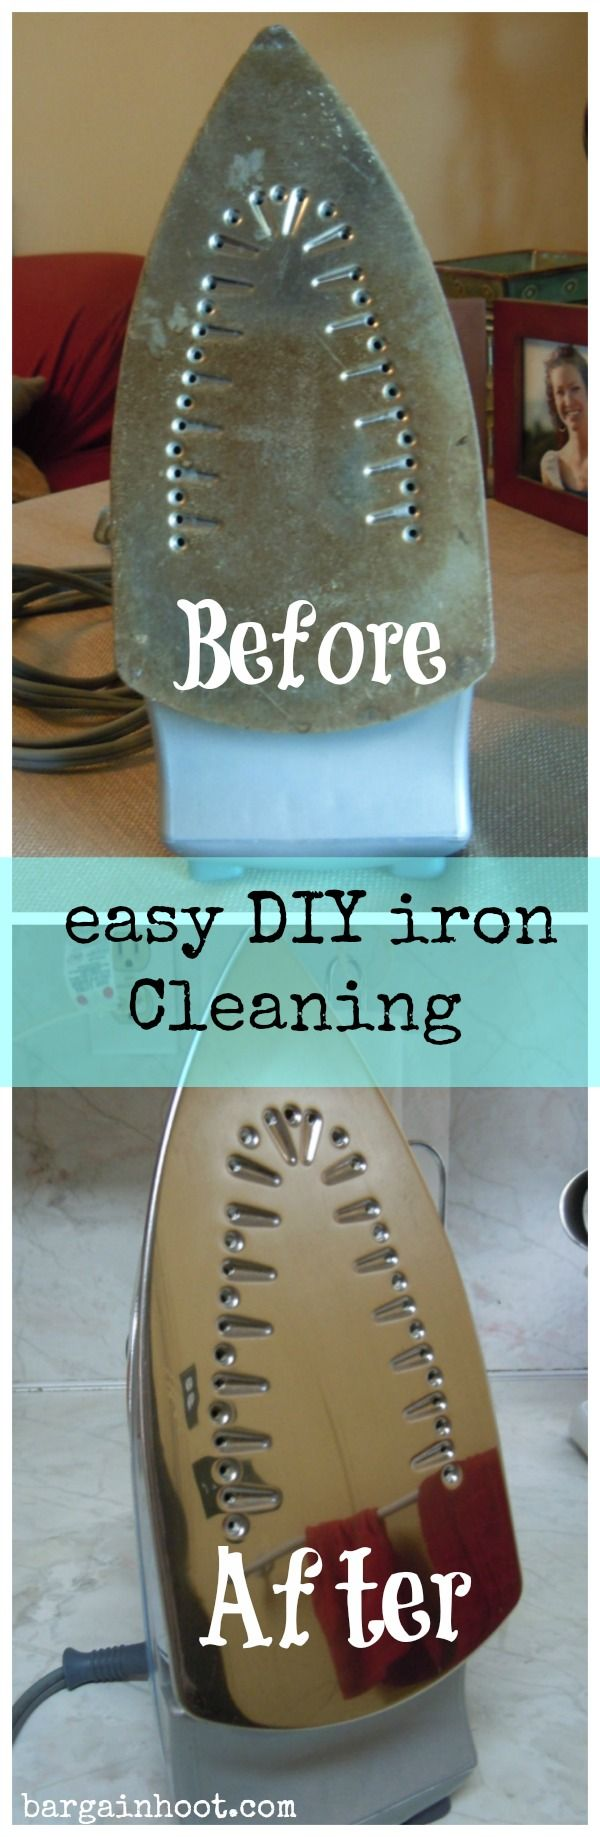 Diy iron cleaning/ did this last weekend. IT WORKS! (I just used the b soda and vinegar) found on another site the same mix to clean the inside of the oven door. Nice, no spray to breathe in and it is so painless. no scrubbing!